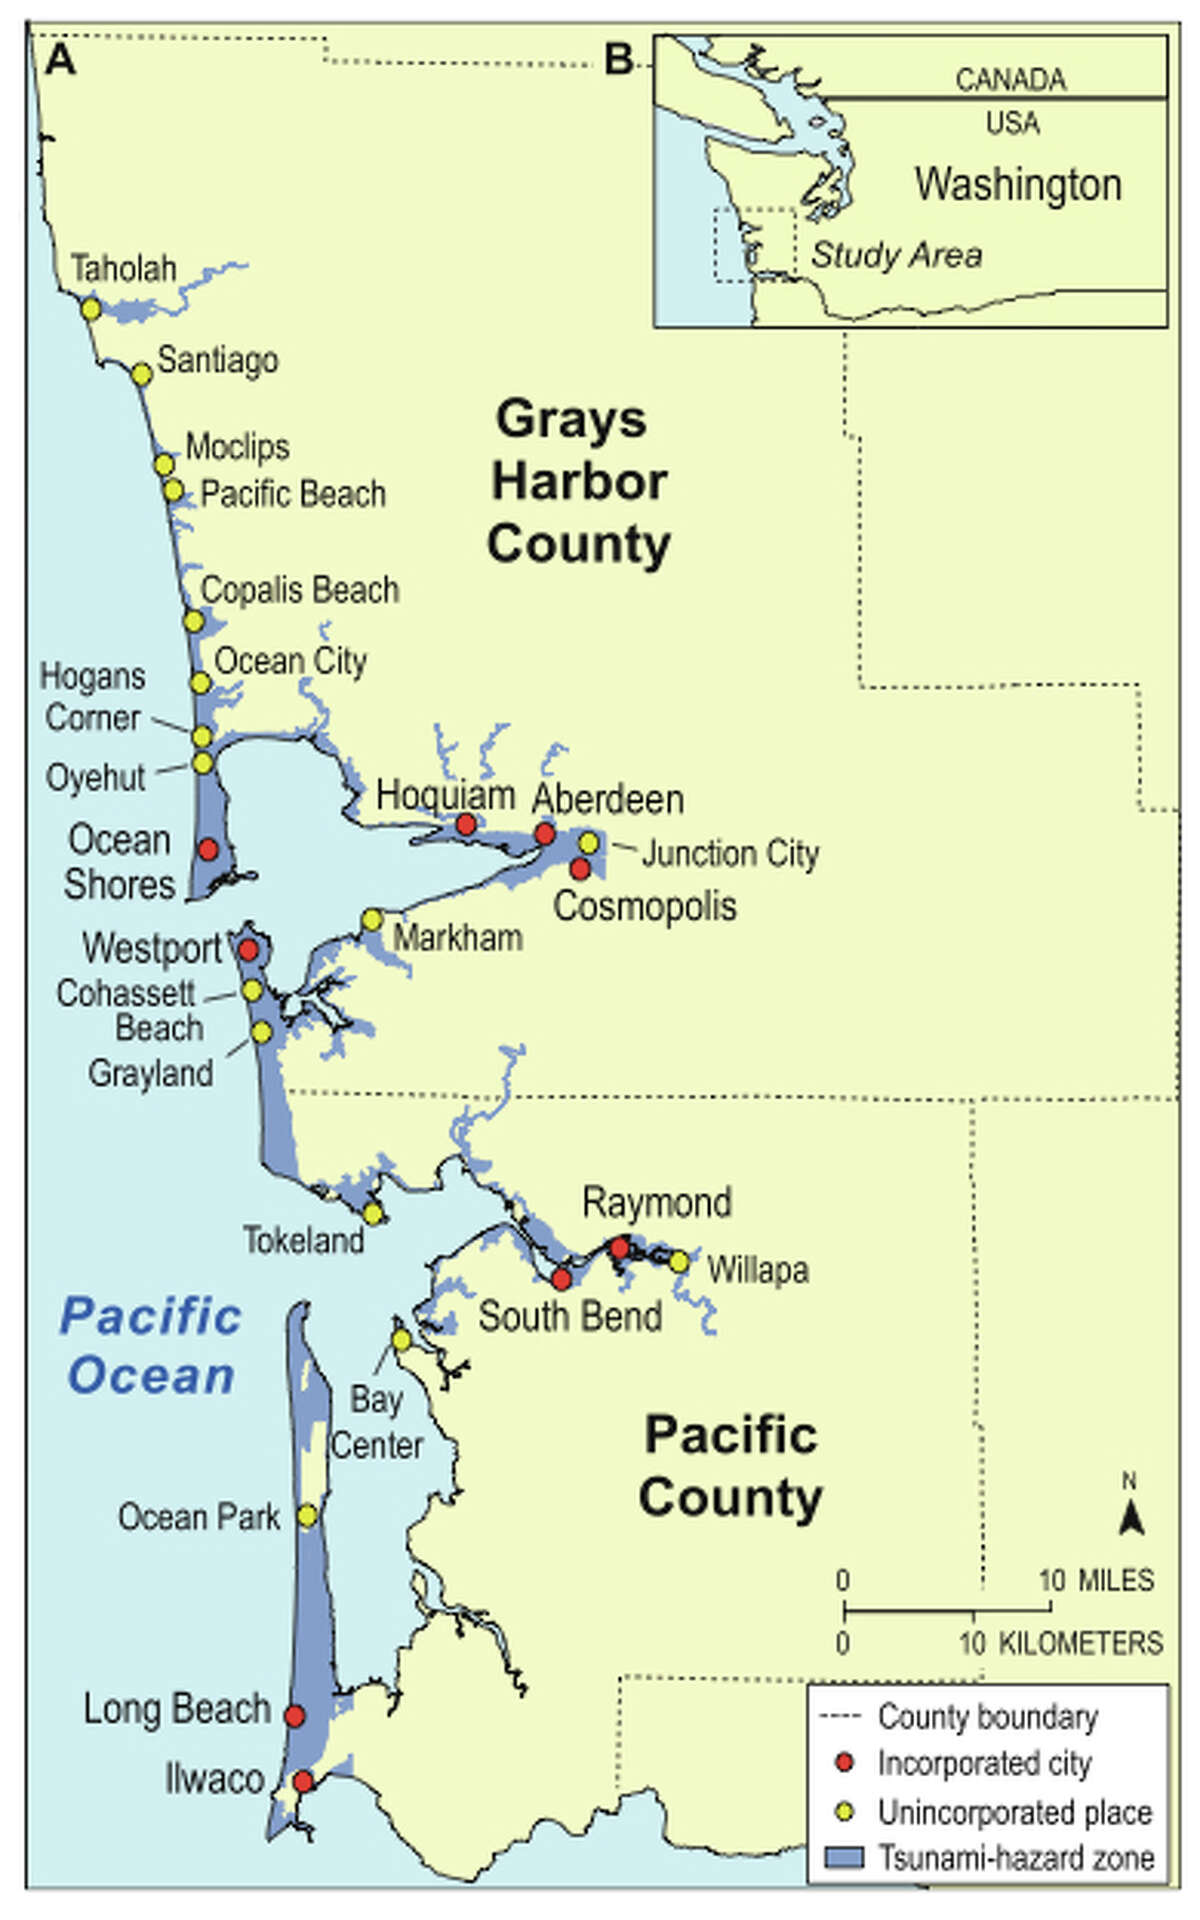 """Maps of the communities of Pacific and Grays Harbor counties in a tsunami-hazard zone related to a potential Cascadia subduction zone earthquake, and the study area for research of how many people could make it out of a tsunami zone in the event of a Cascadia Subduction Zone earthquake. The research by the USGS is titled: """"Community variations in population exposure to near-field tsunami hazards as a function of pedestrian travel time to safety"""""""